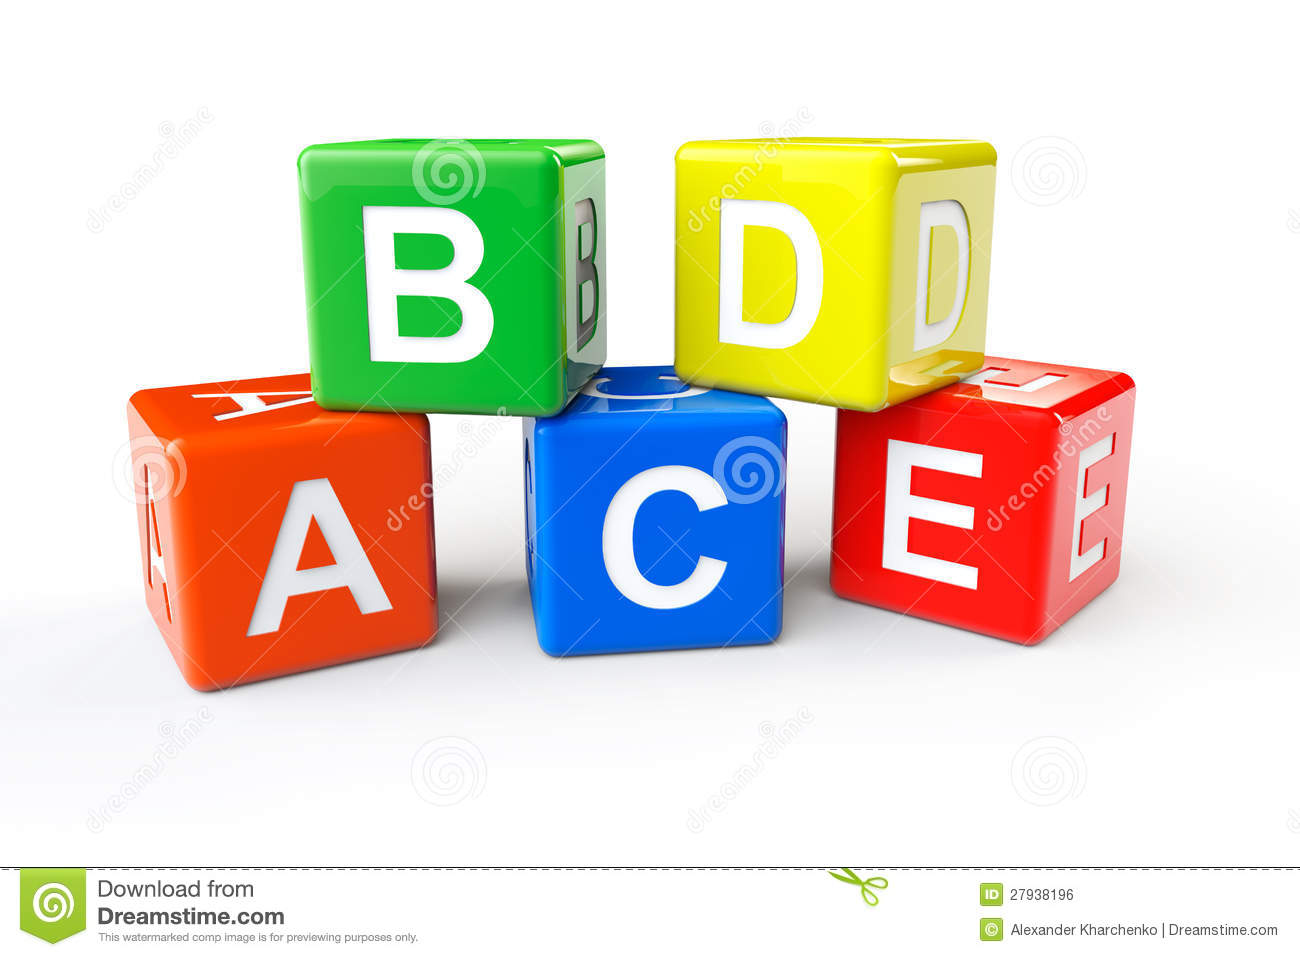 abcd block cubes royalty free stock image image 27938196 abc blocks clipart abc blocks clipart black and white